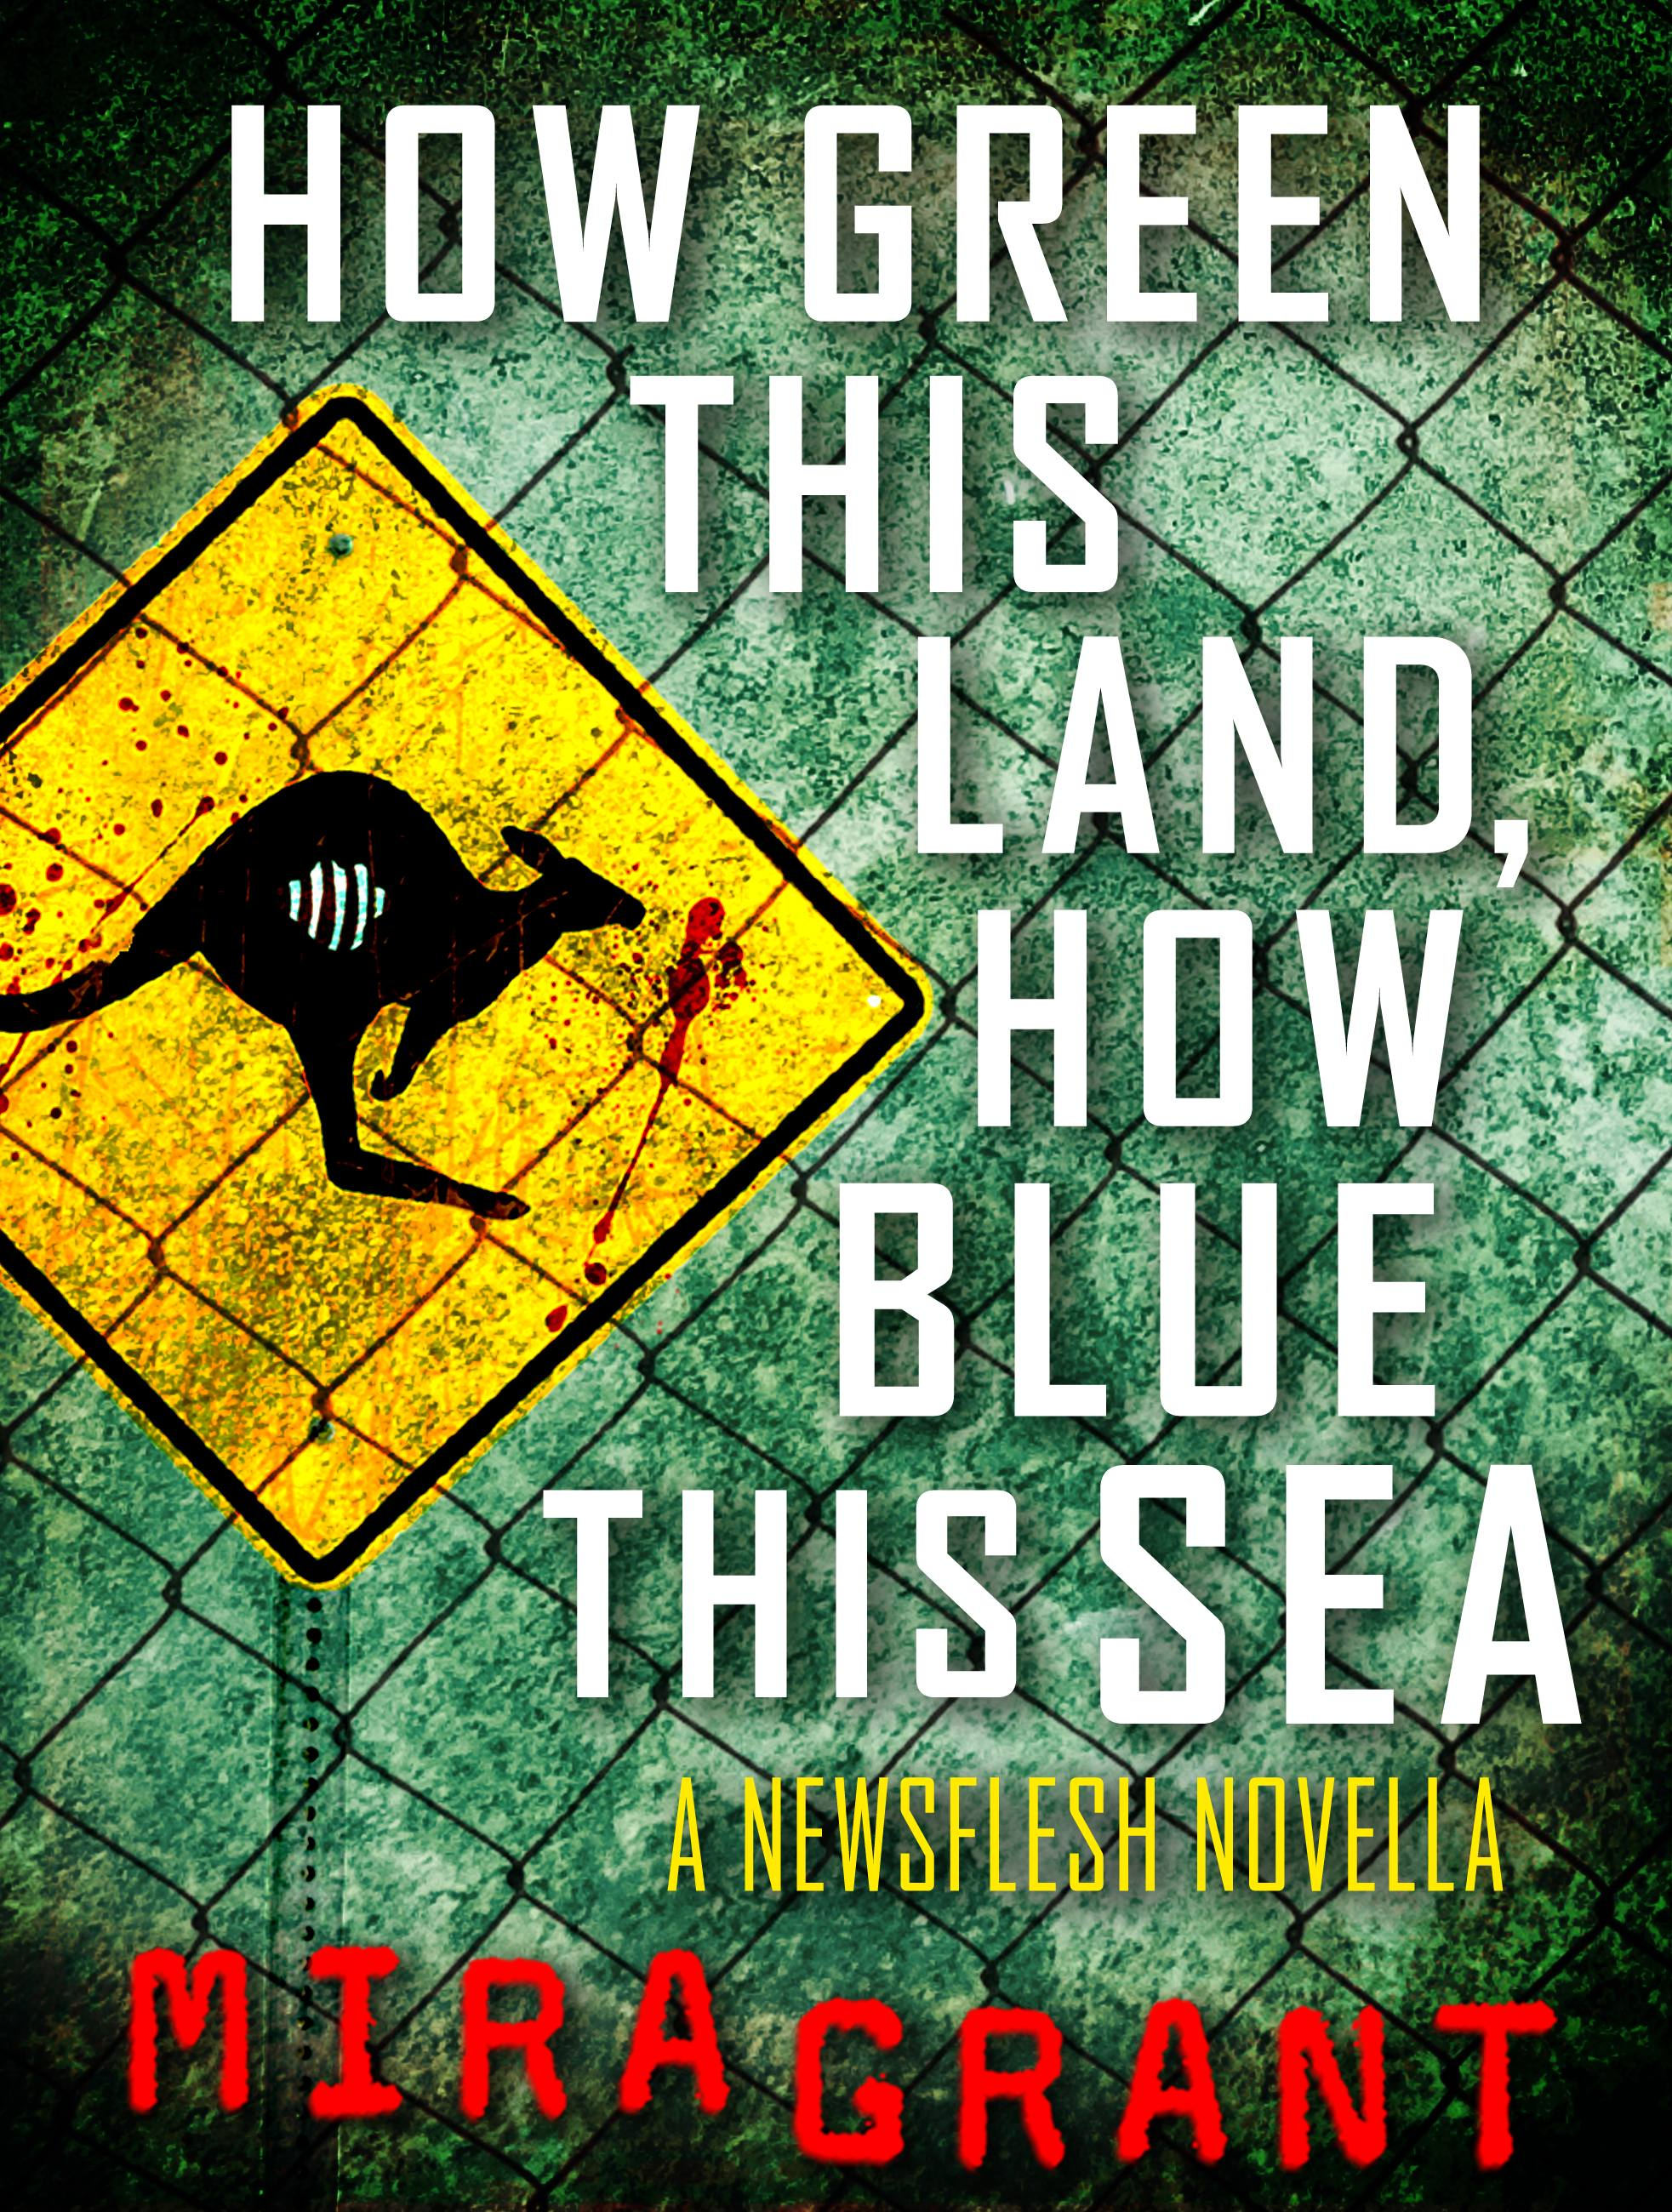 Cover Image of How Green This Land, How Blue This Sea